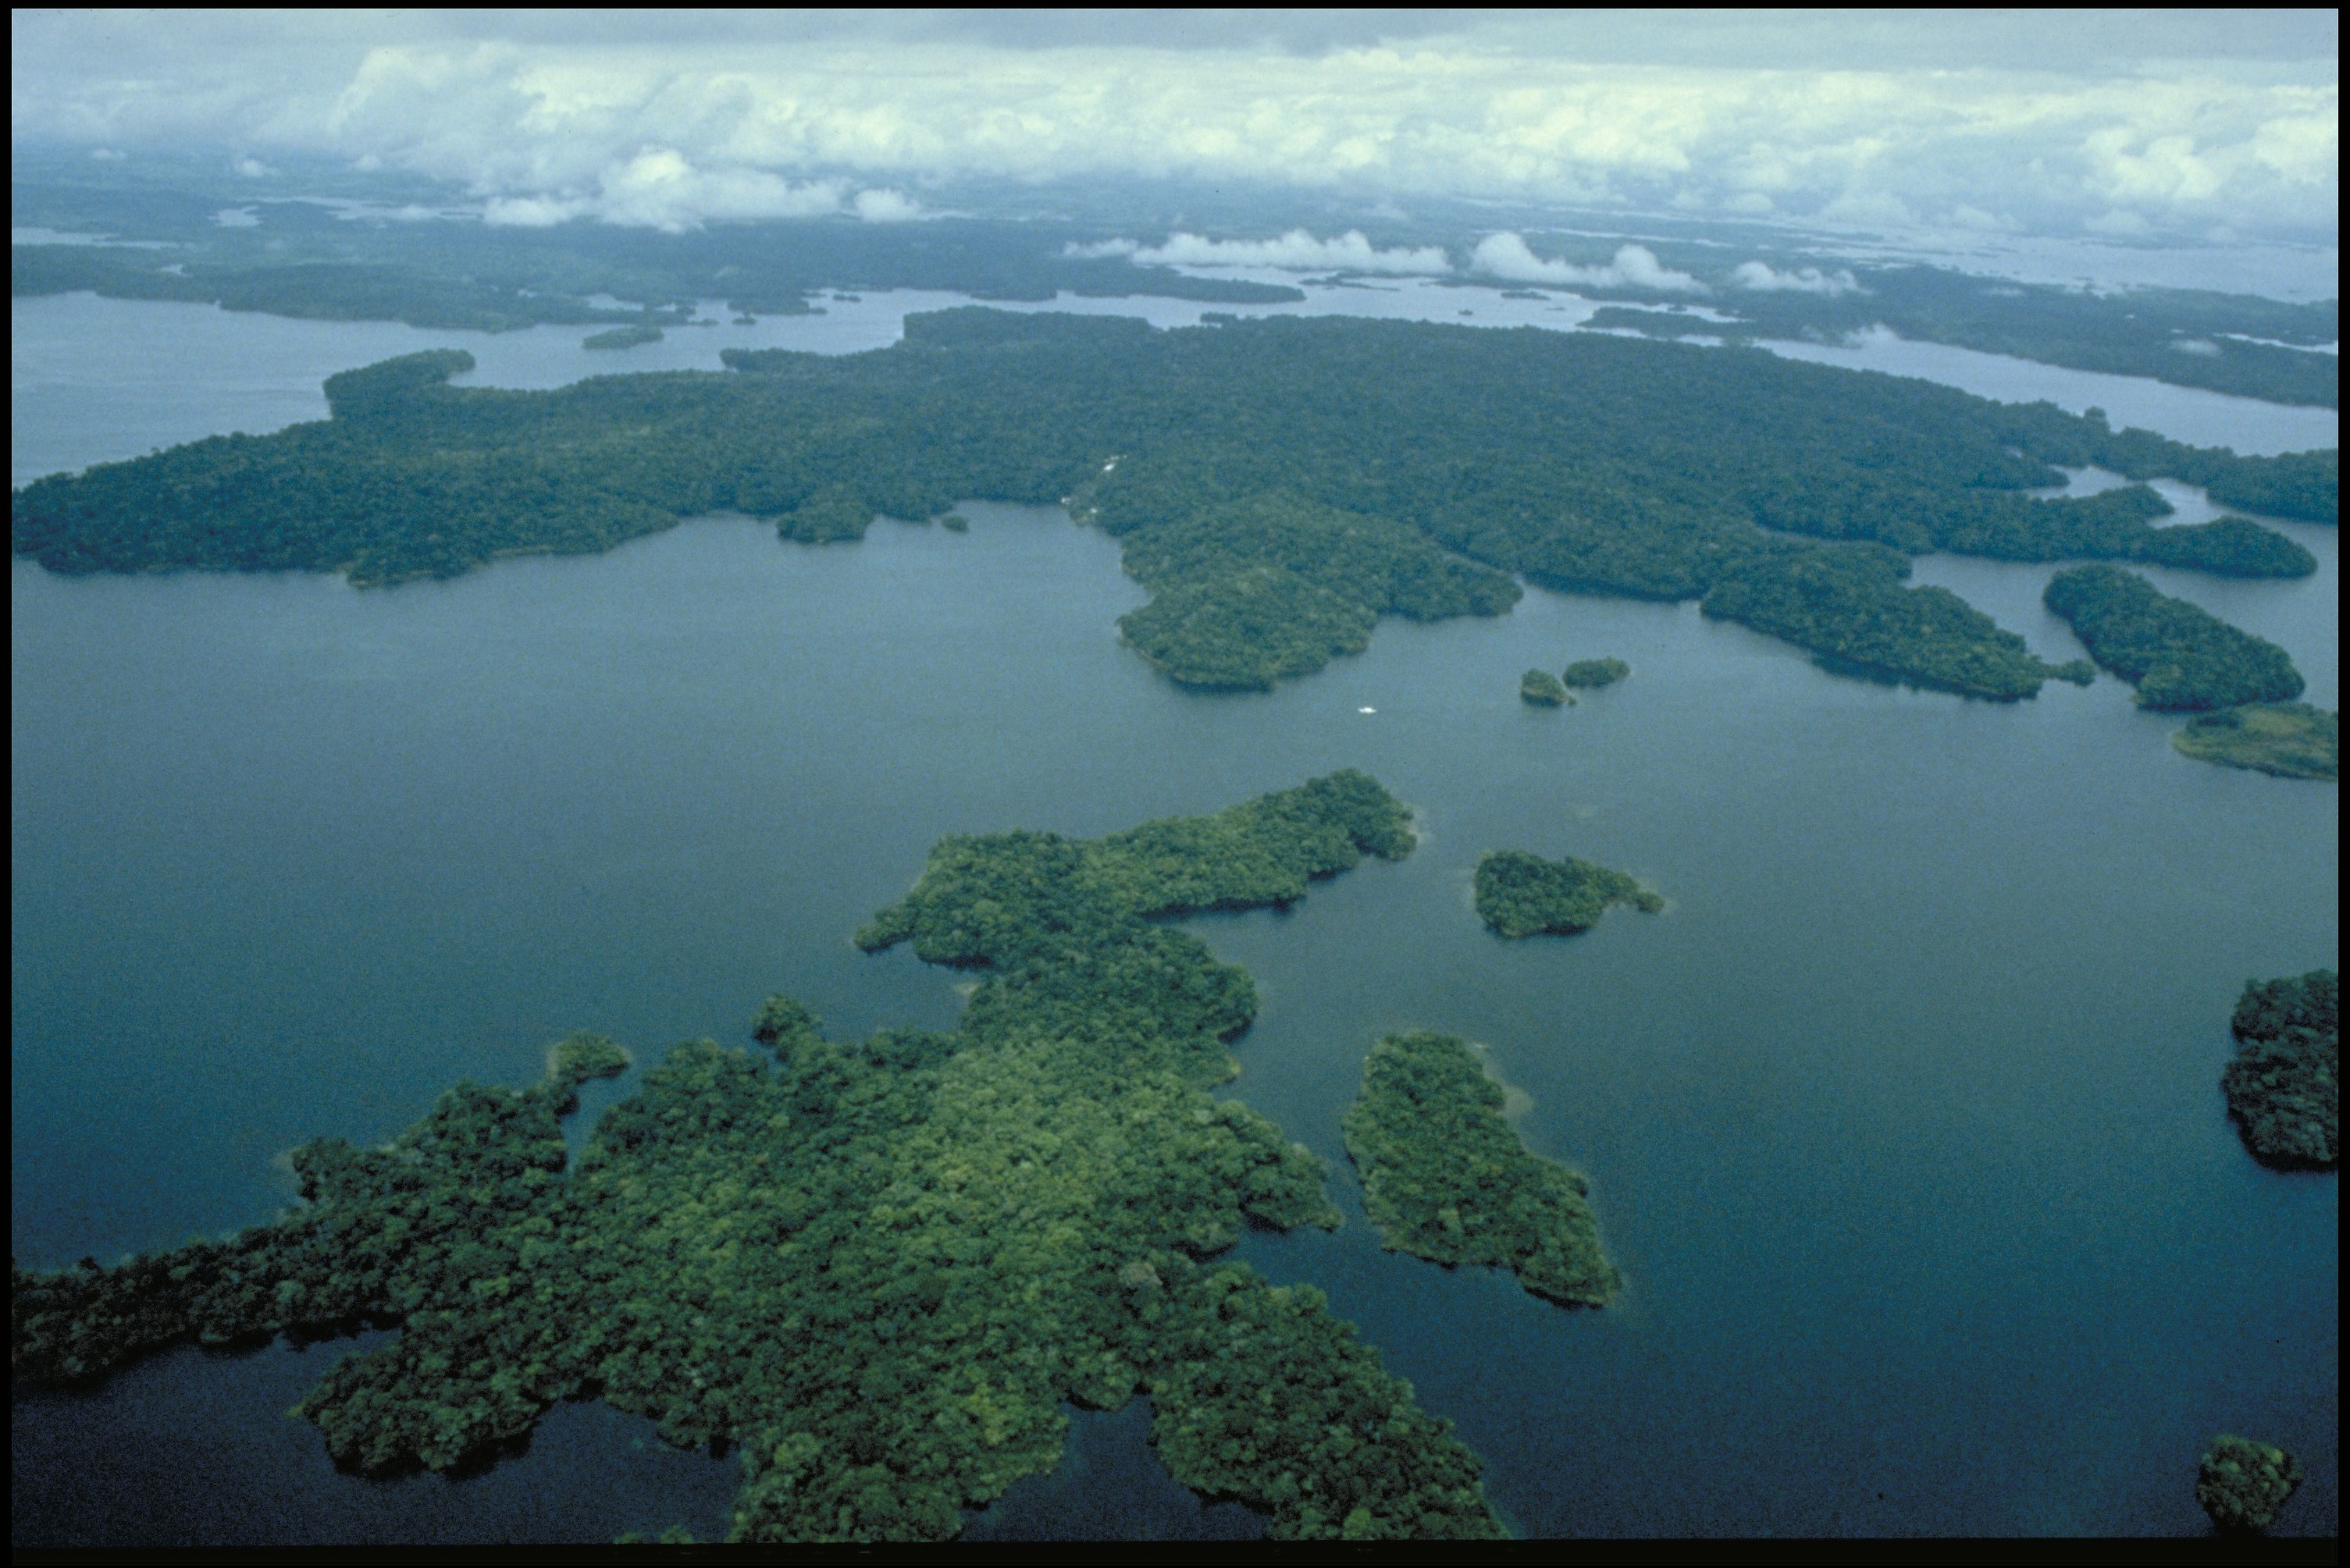 Aerial view of a body of water and forested islands.